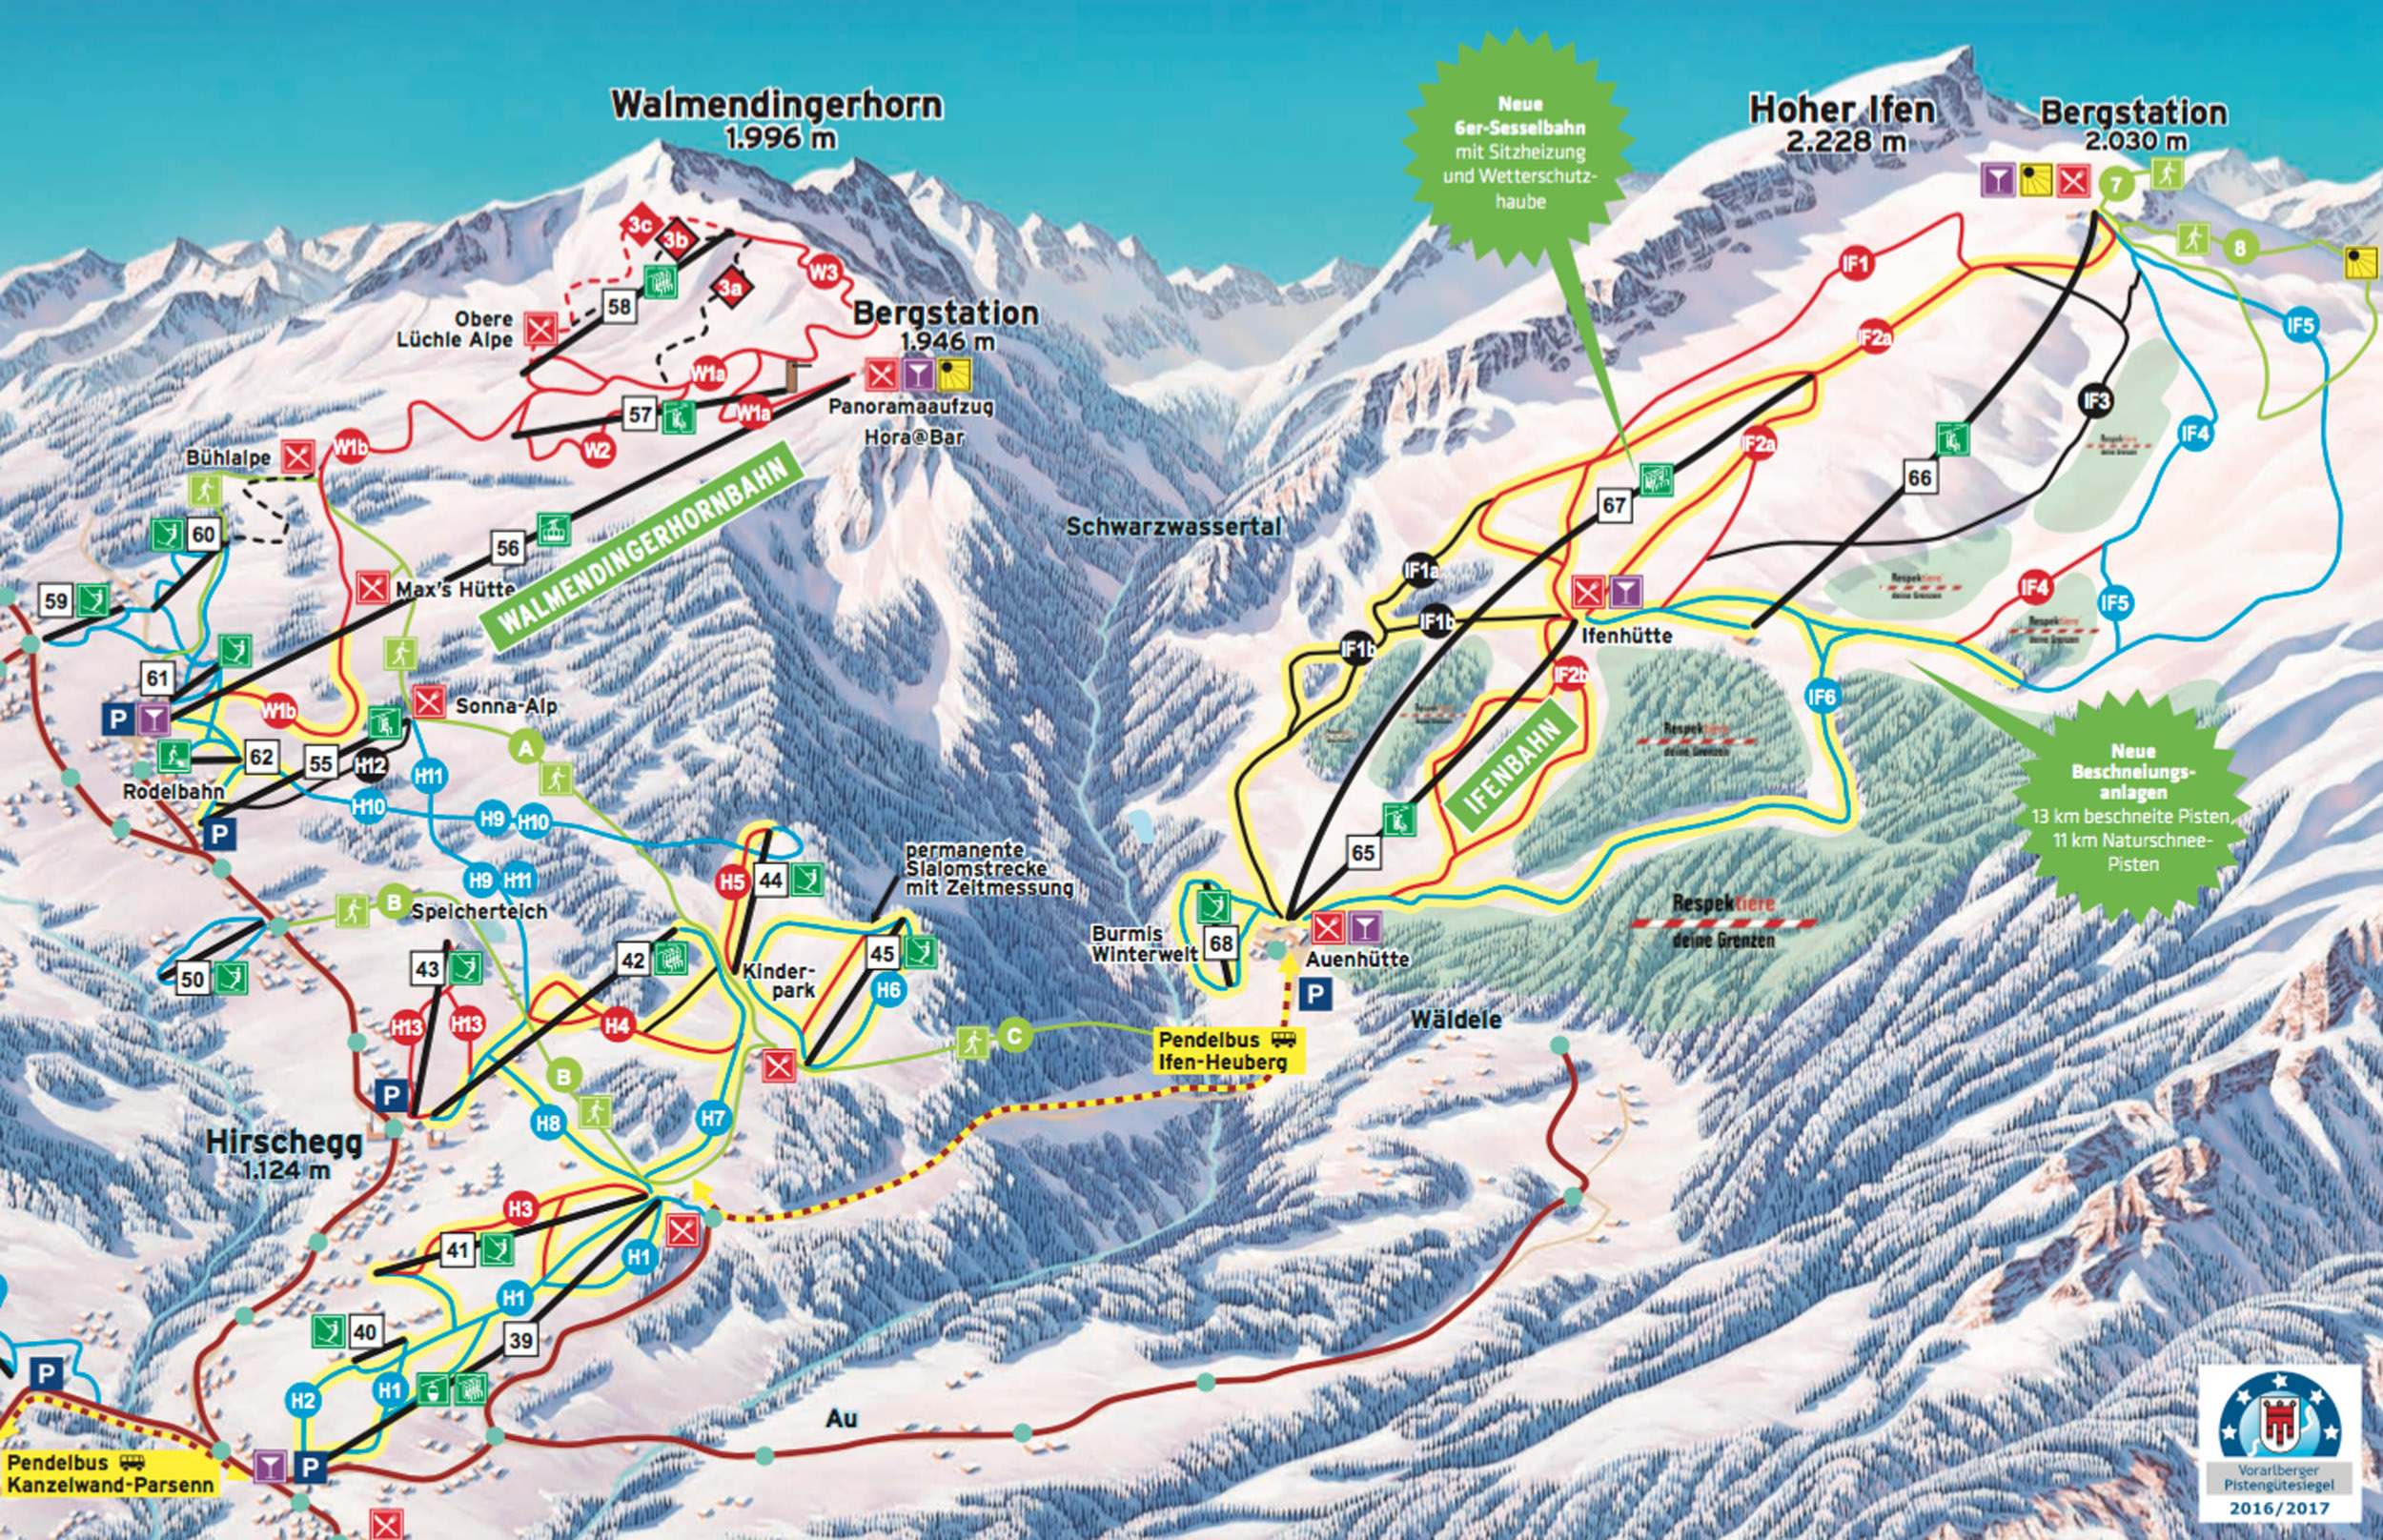 Ski map Kleinwalsertal Oberstdorf Germany